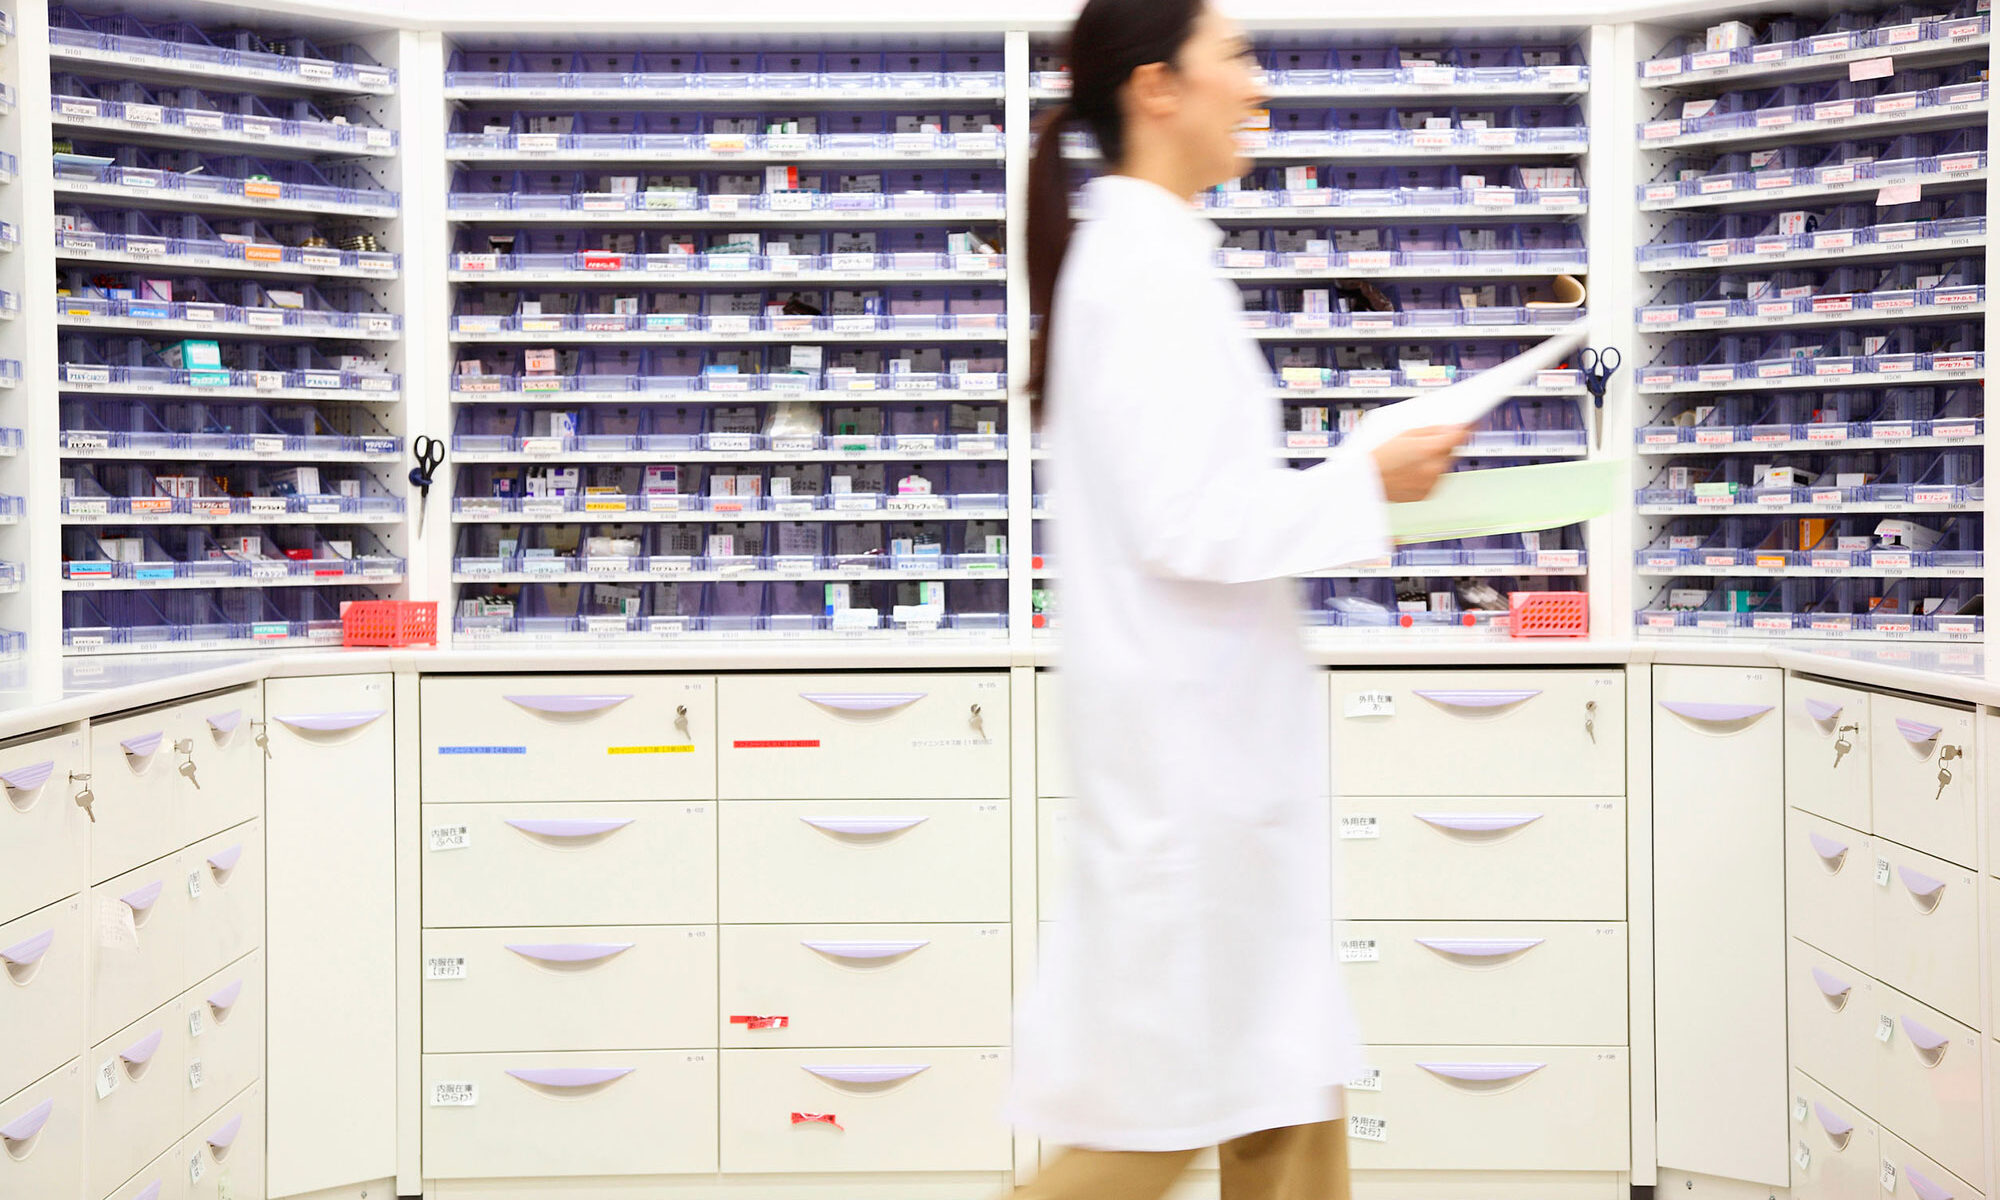 pharmacist filling out prescriptions for customers in Ashburton